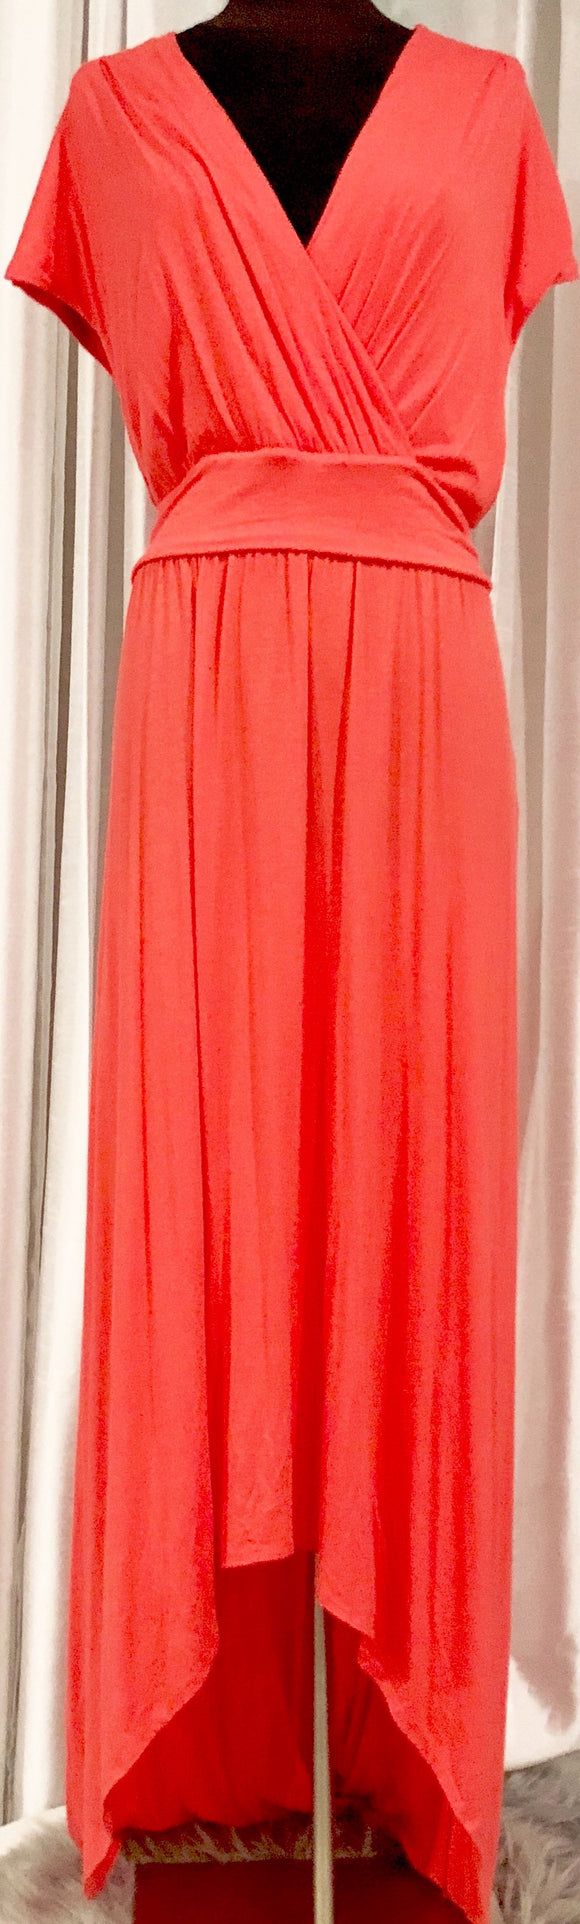 BOUTIQUE Coral Maxi Dress Size 1X NWT